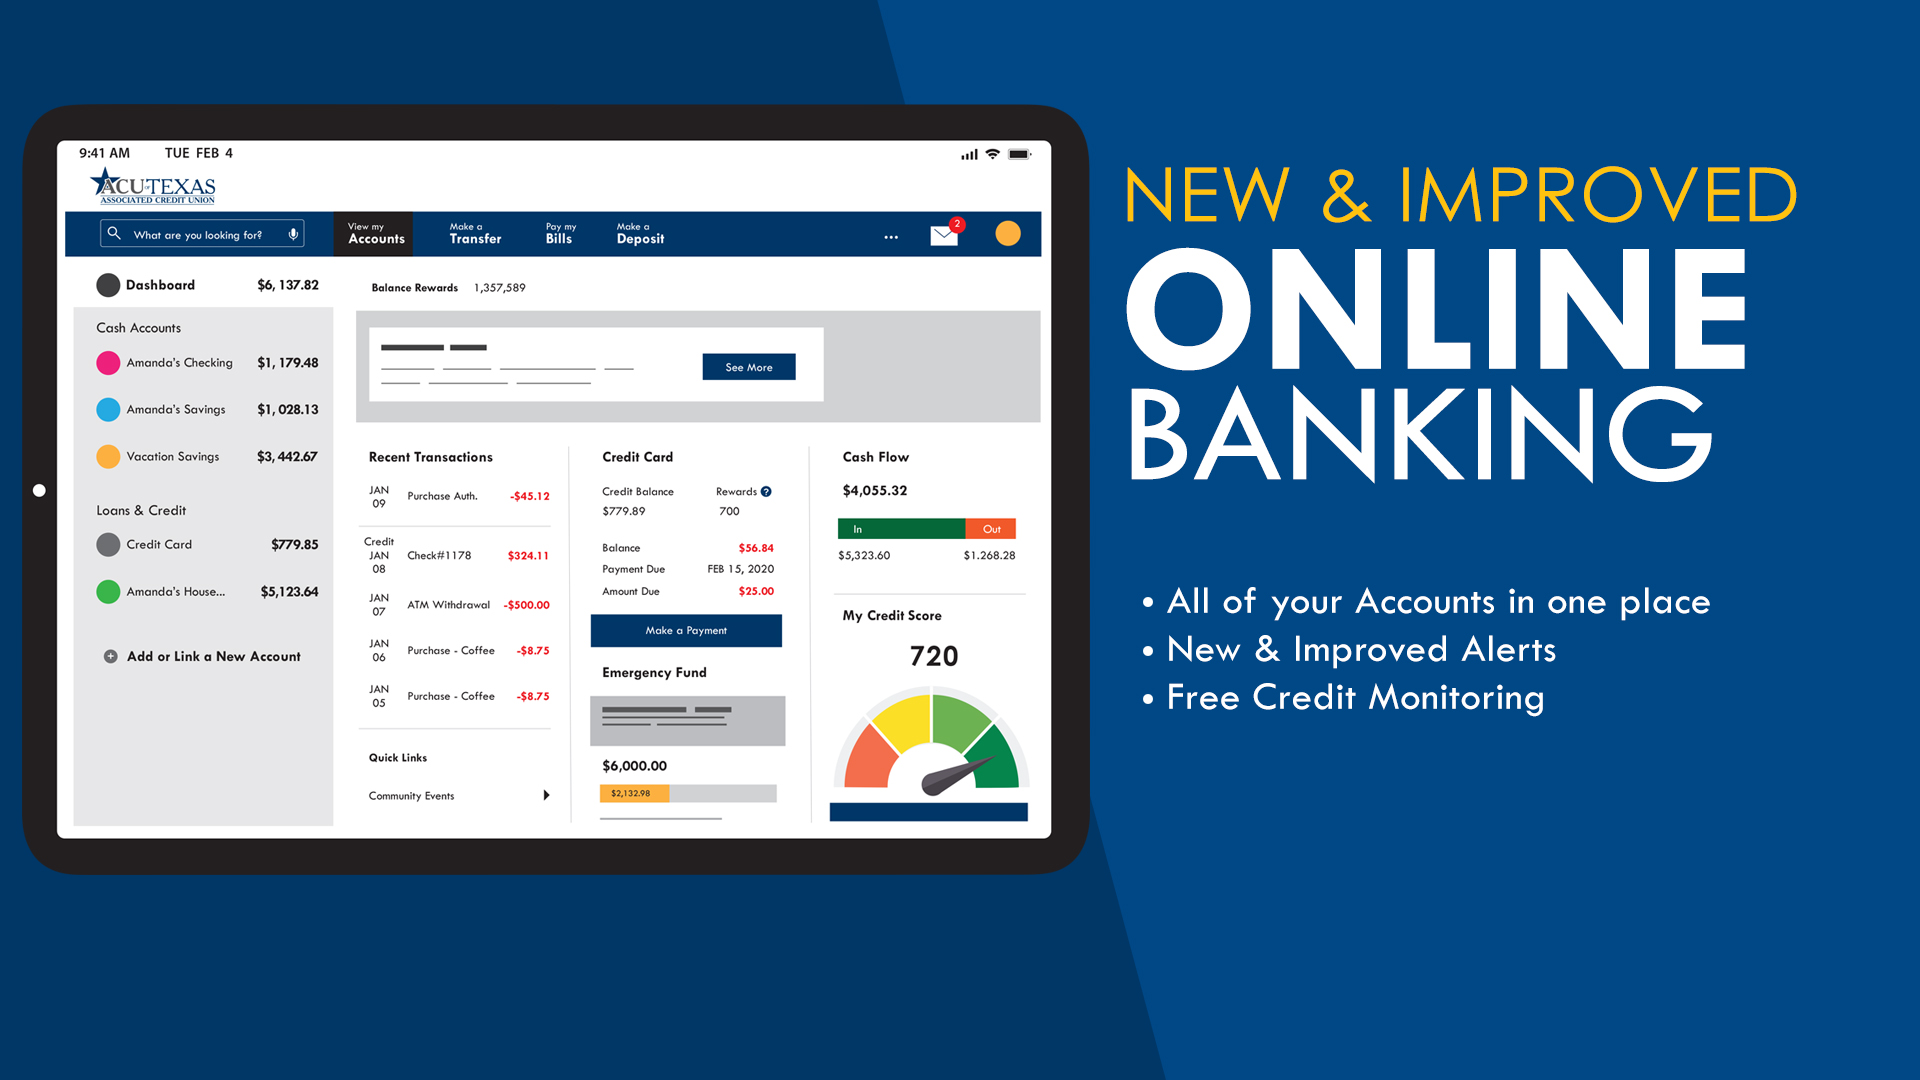 New Online Banking 1920x1080